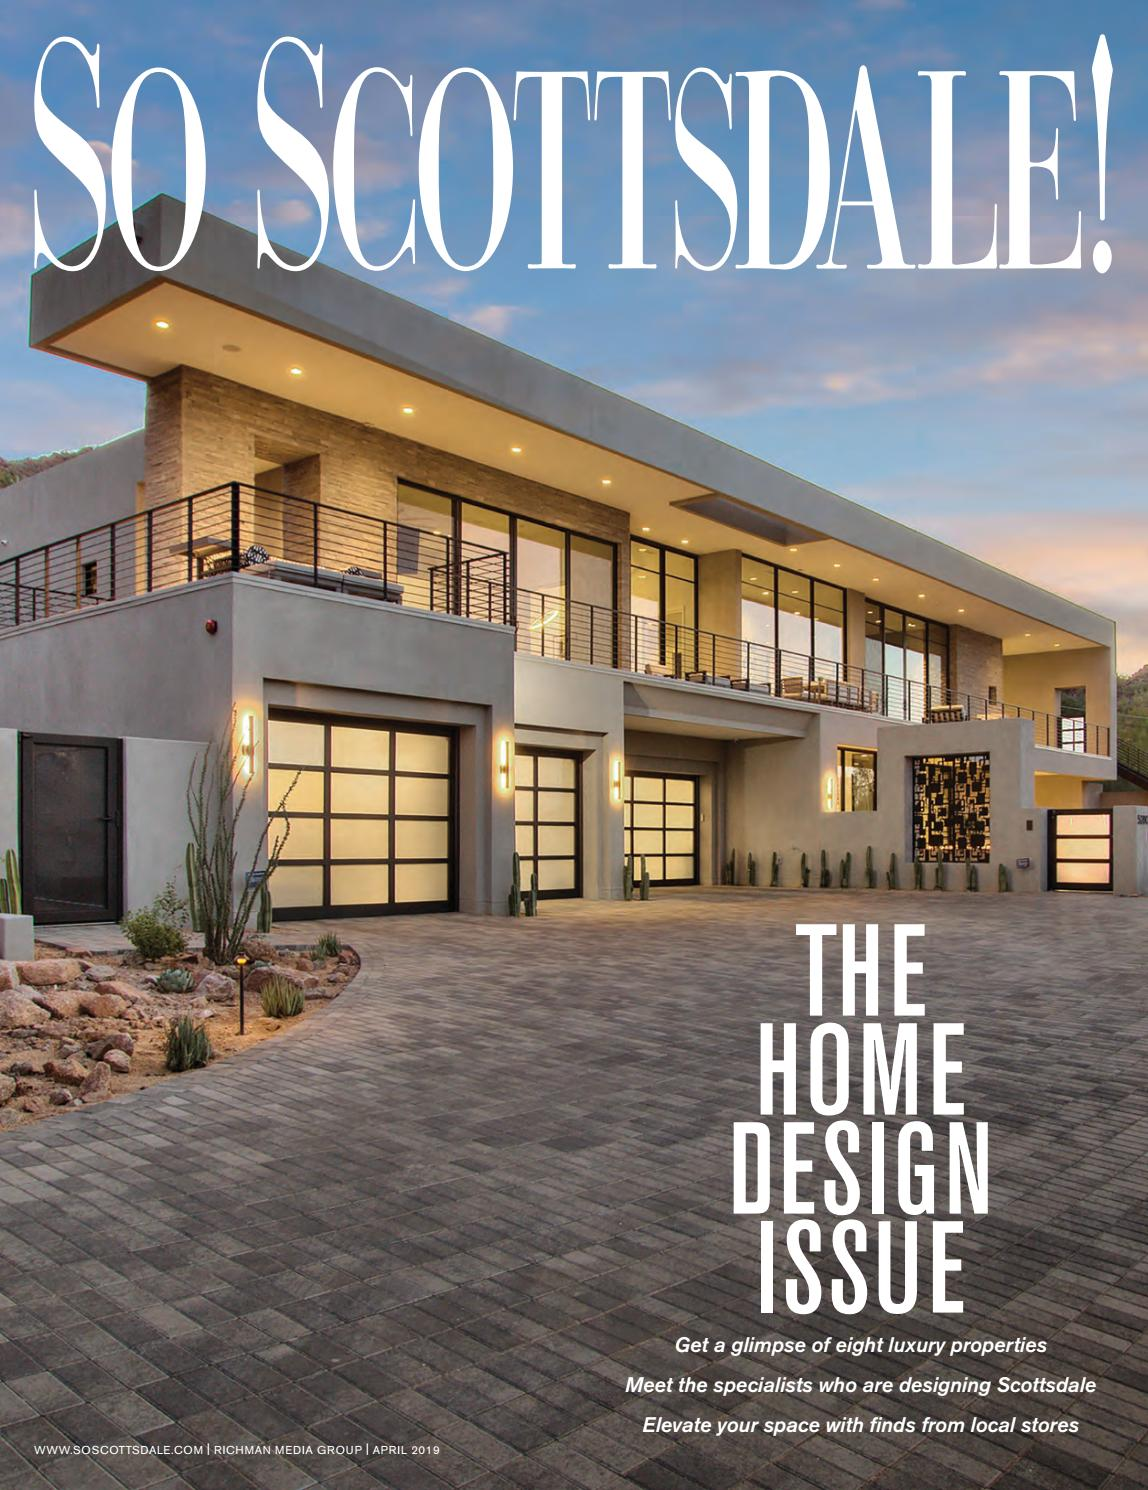 Real Estate Vission House Am Intermediat Cu 20 Mai Best New Interior Designers So Scottsdale April 2019 By Richman Media Group - Issuu